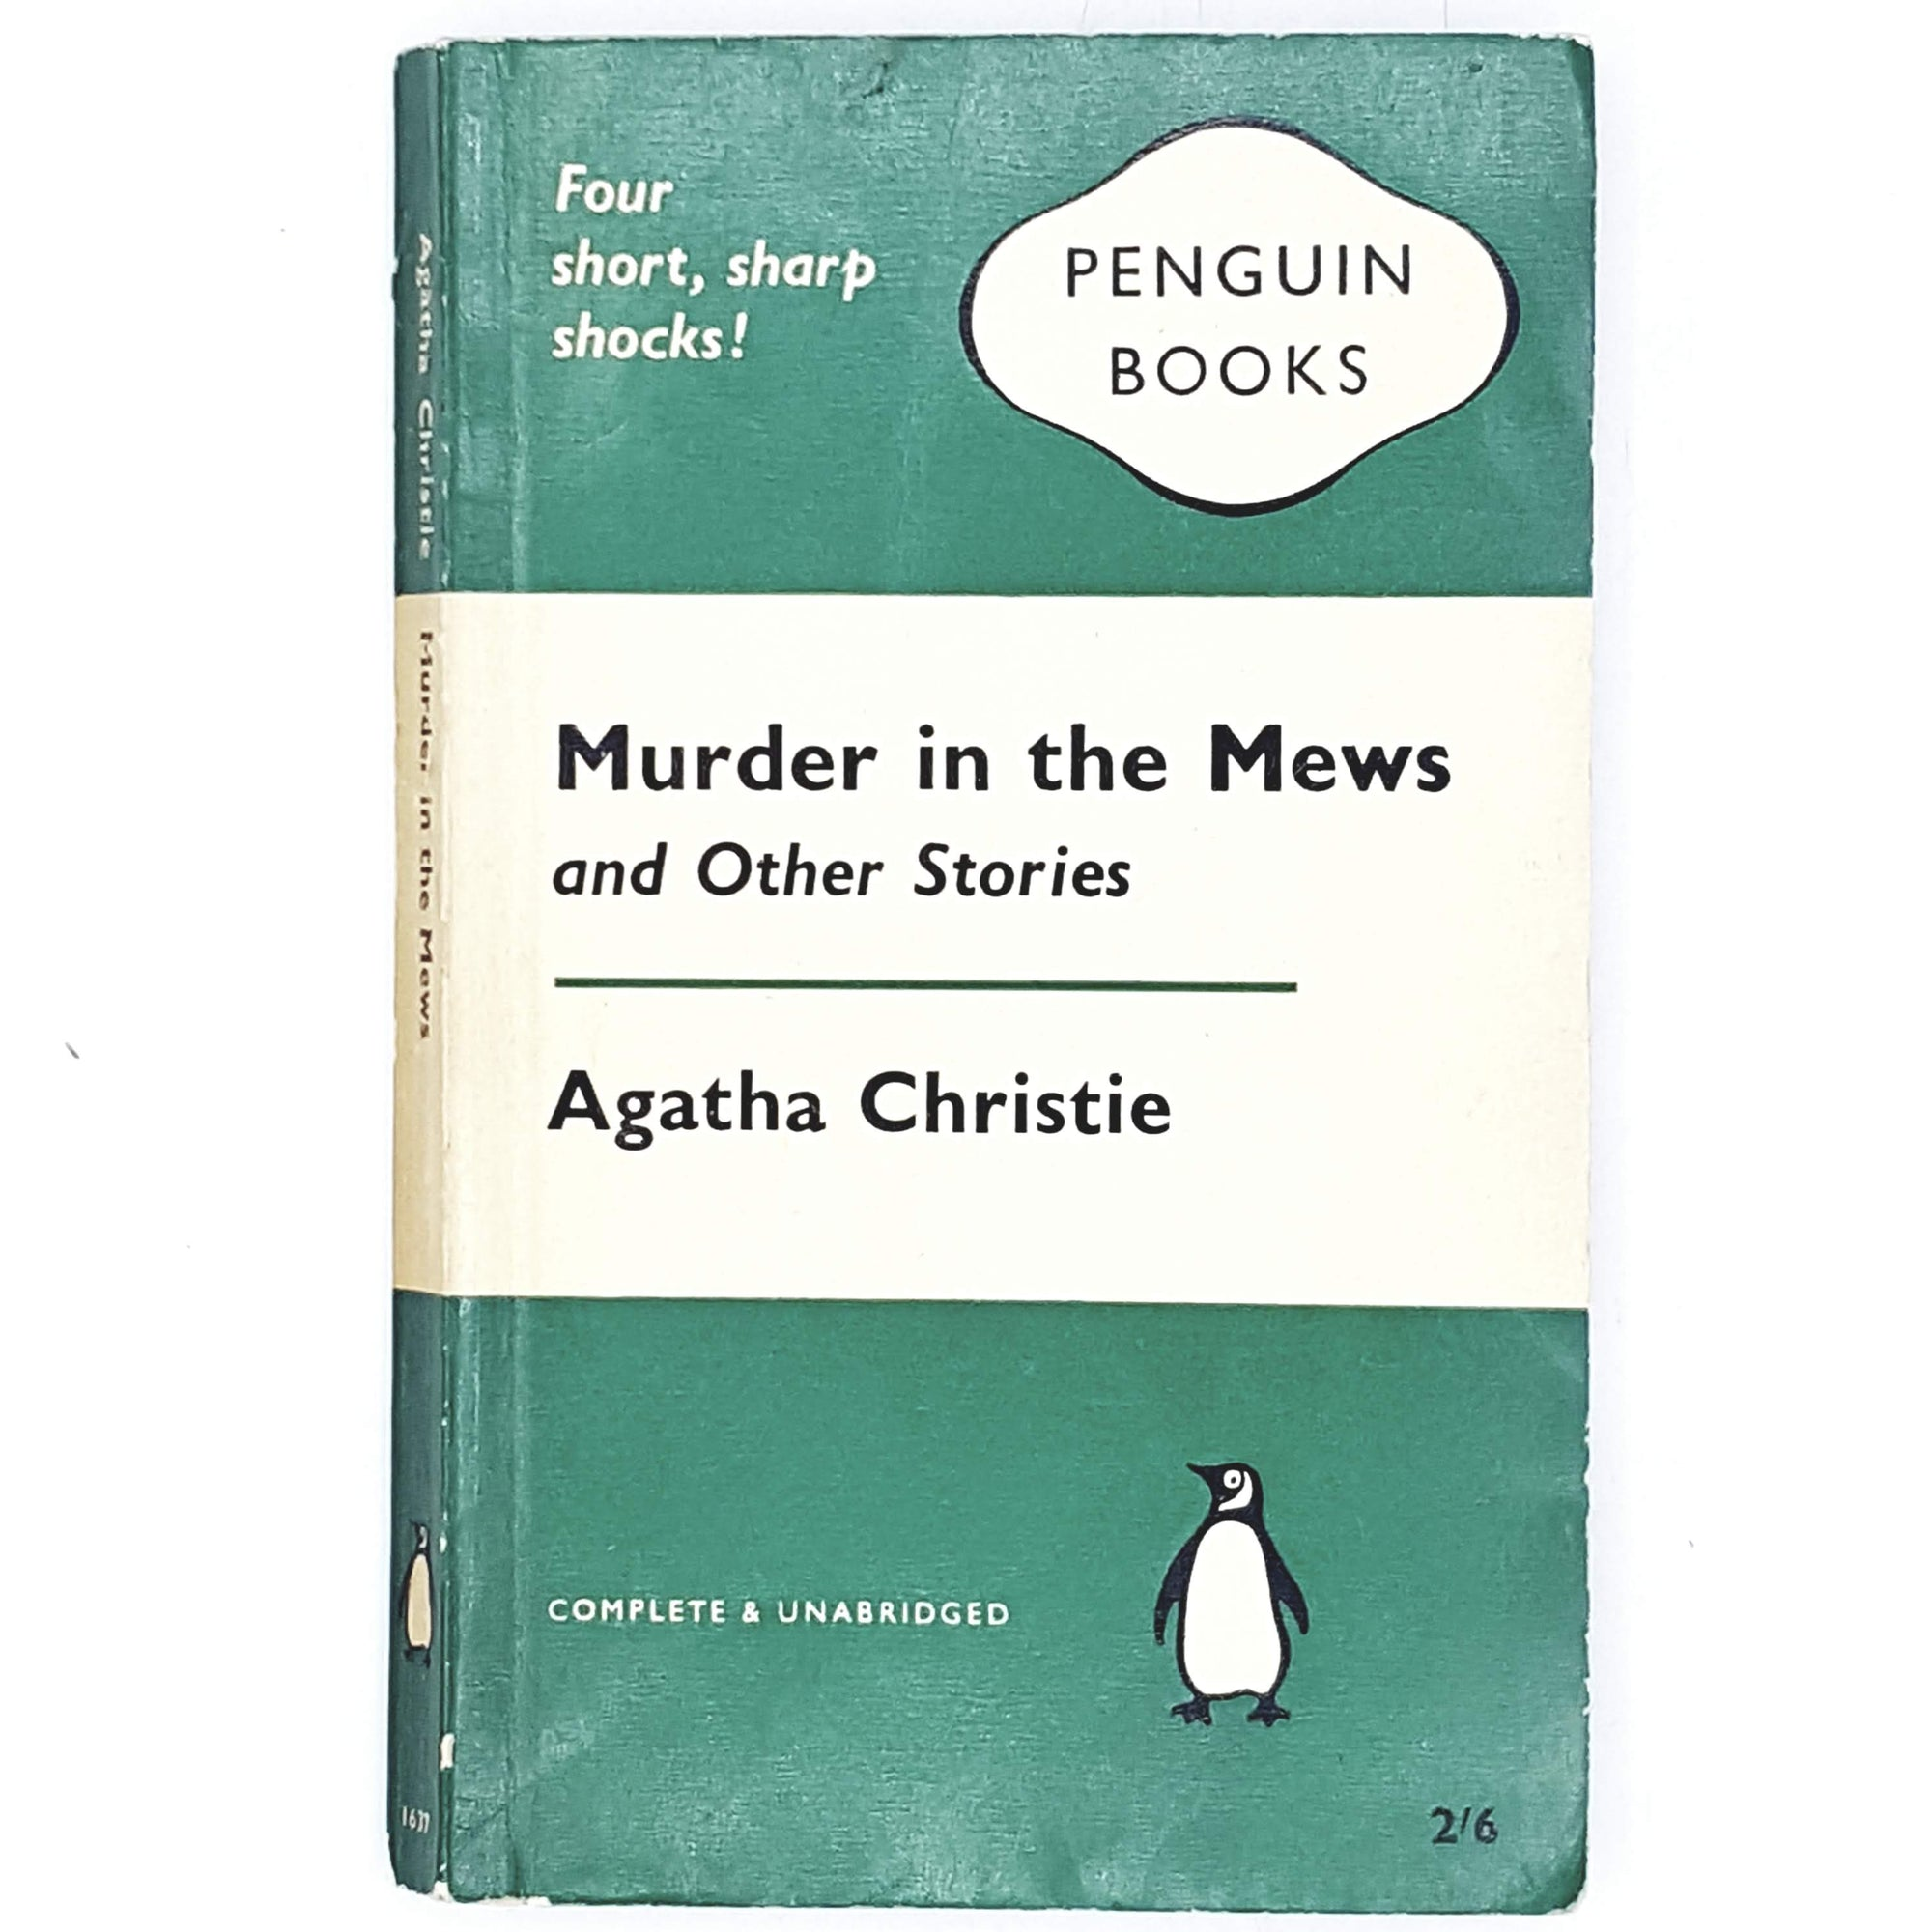 Agatha Christie's Murder in the Mews and Other Stories 1961